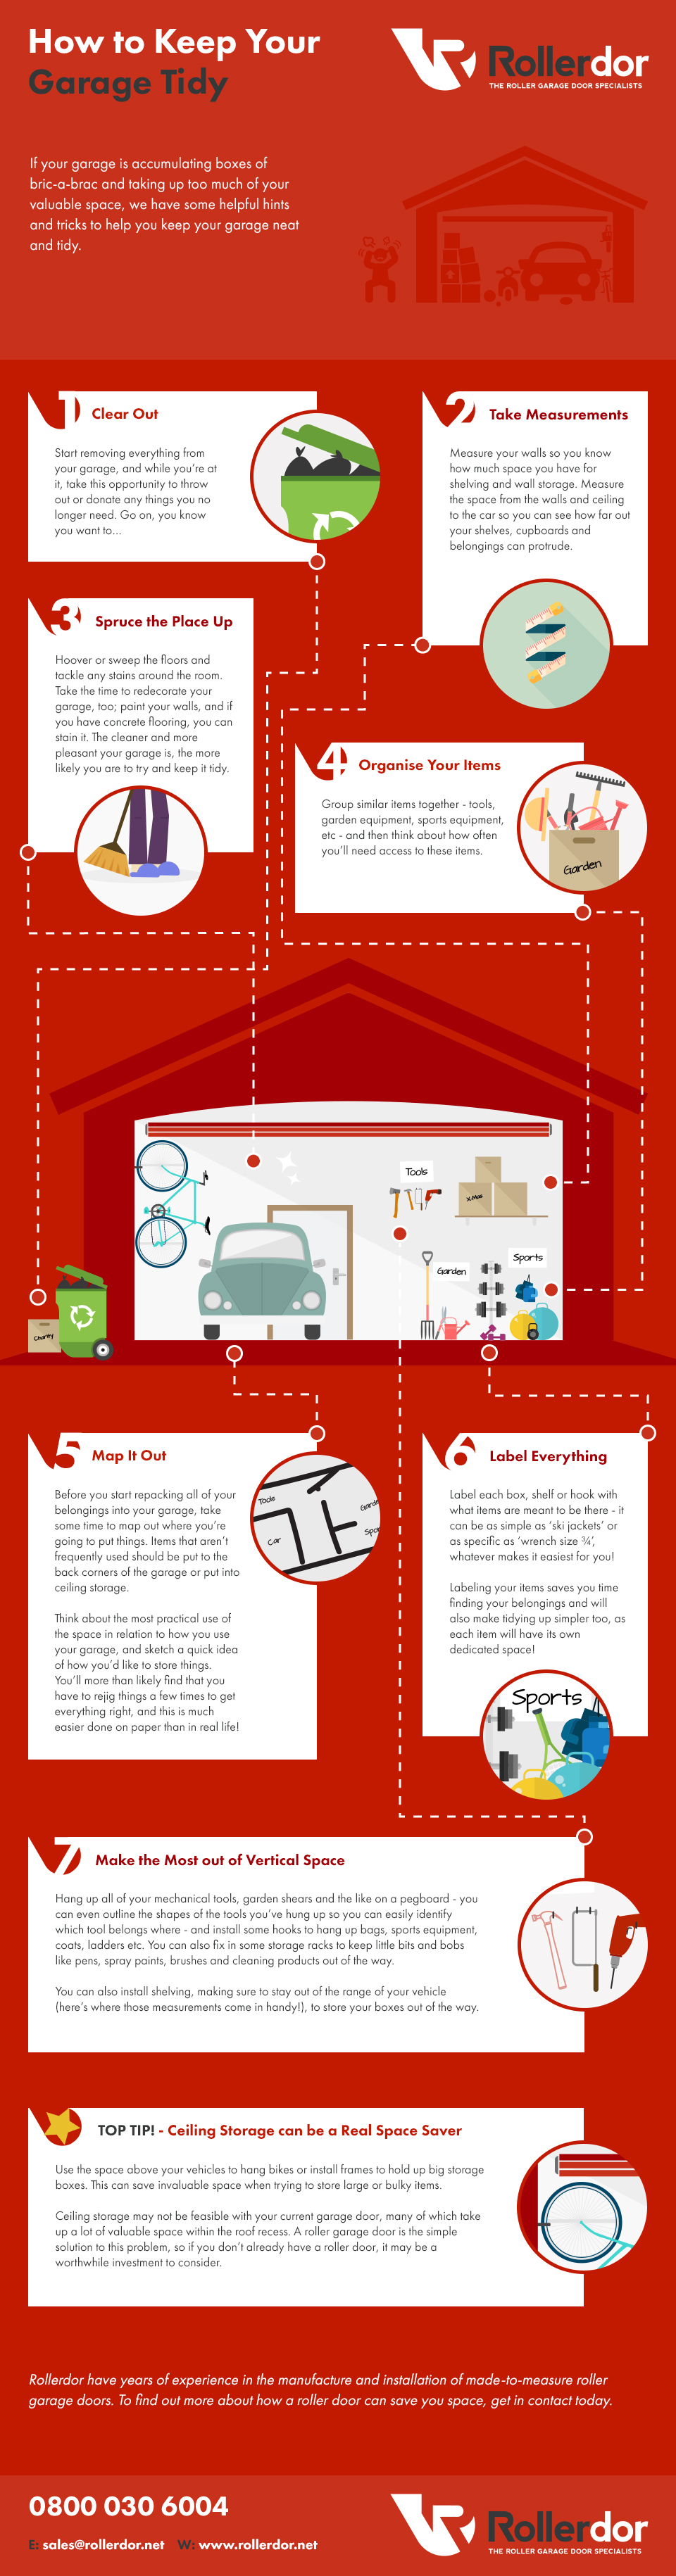 How To Keep Your Garage Tidy Infographic Rollerdor Garage Doors